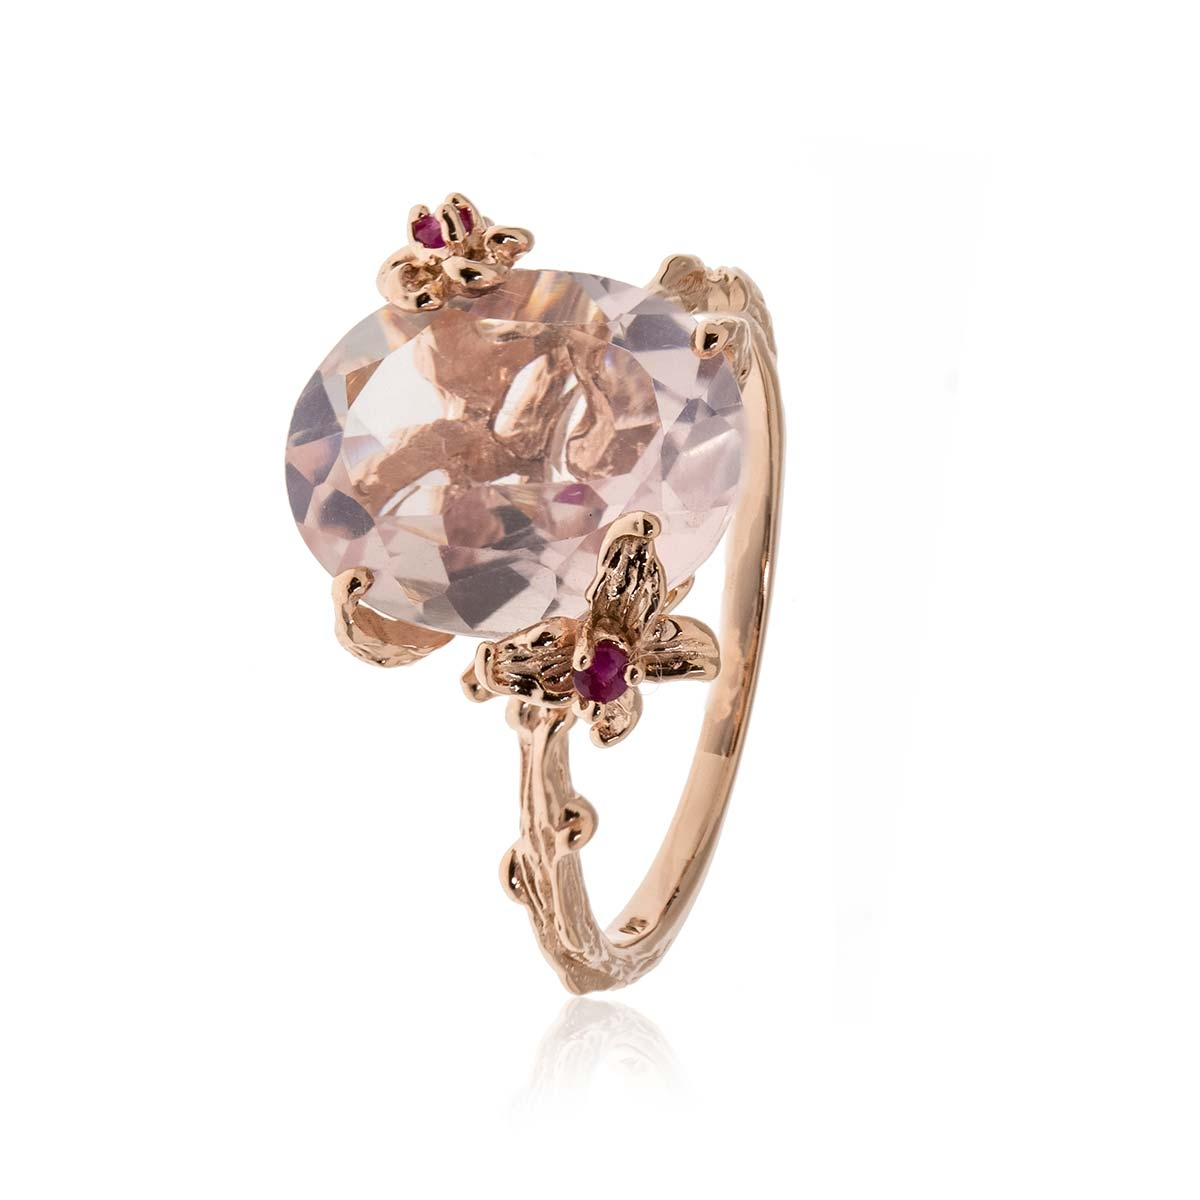 Allure Rose Gold Plated Rose Quartz & Rhodolite Ring